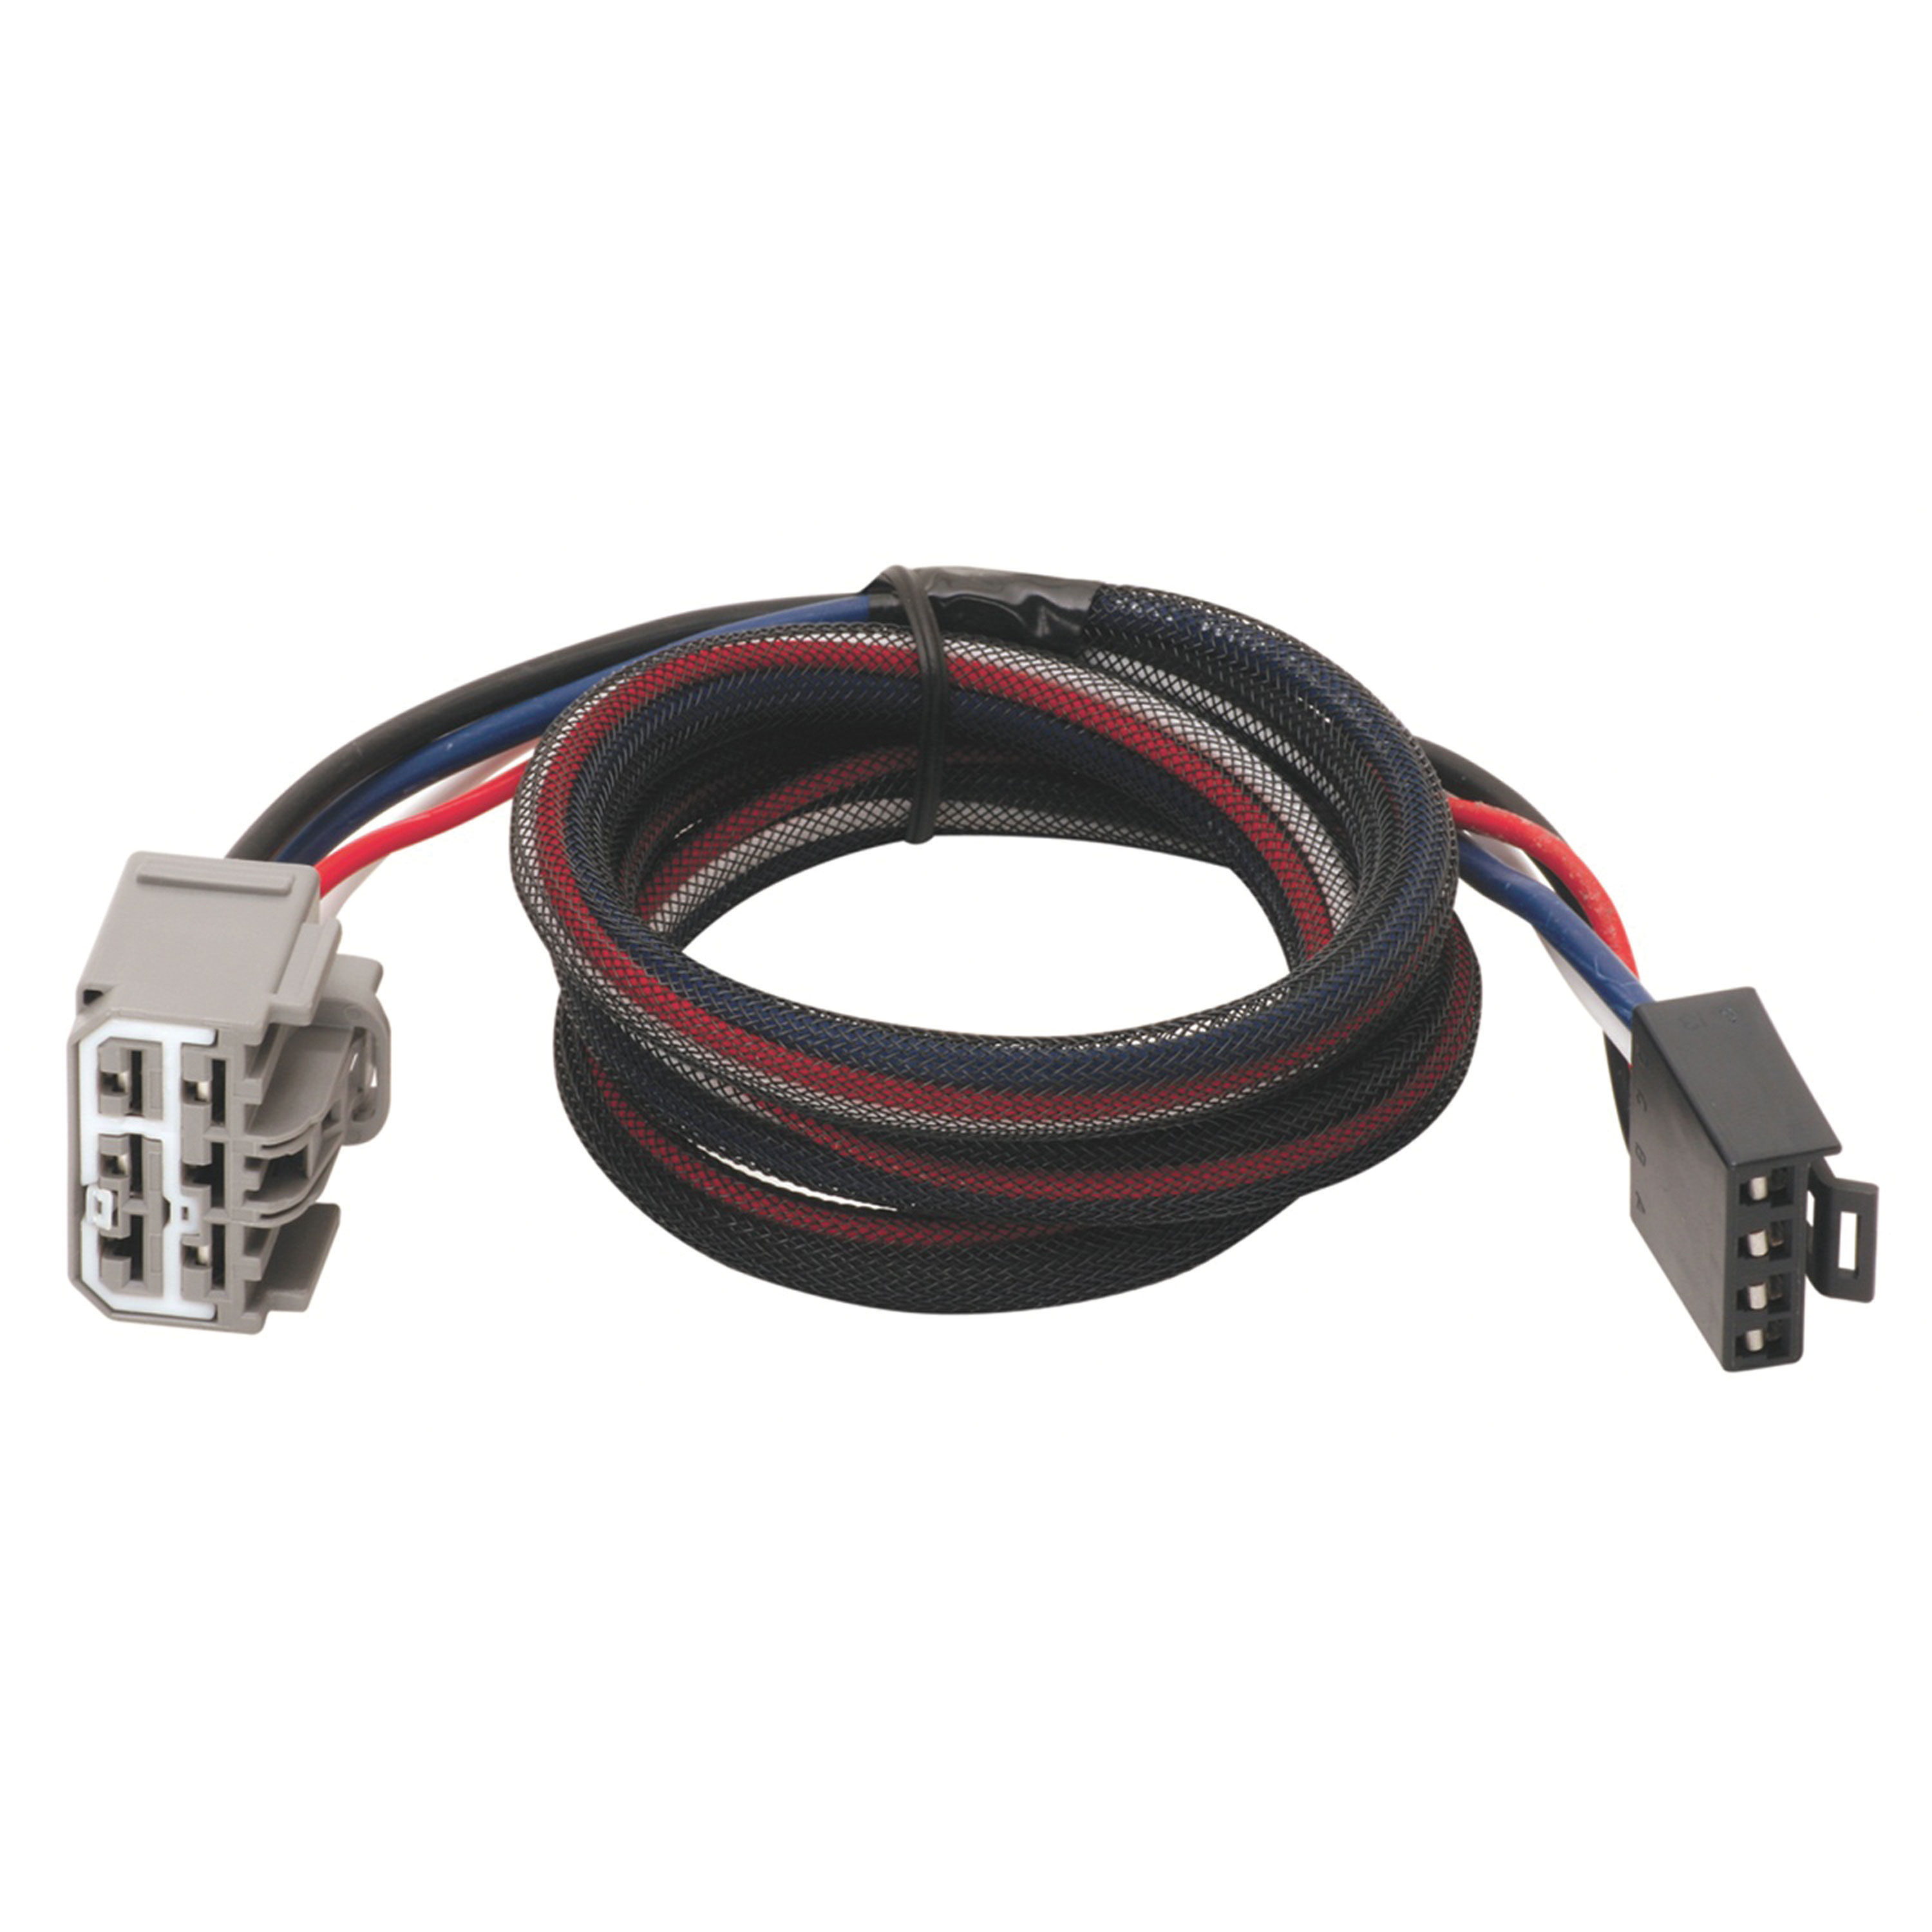 Jvc Wiring Harness Walmart Trusted Diagrams Car Stereo Harnesses Page 5 Online Schematic Diagram U2022 Audio